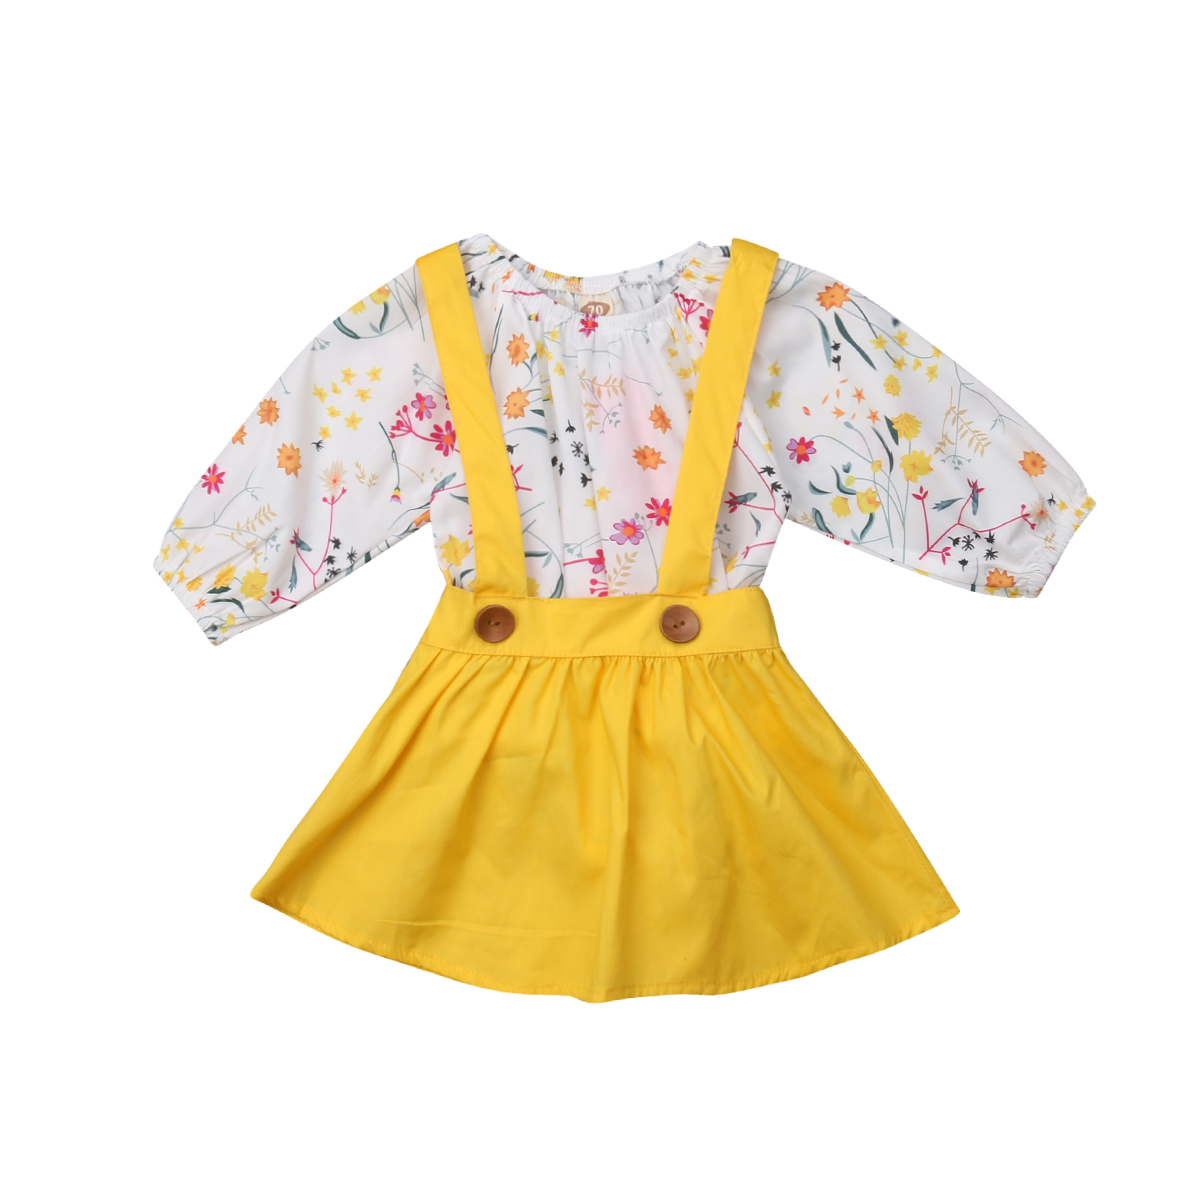 Floral Baby Girl Clothing Long Sleeve Tops Bodysuits Tutu Skirt 2pcs Cotton Casual Party Clothes Girls 0-24M